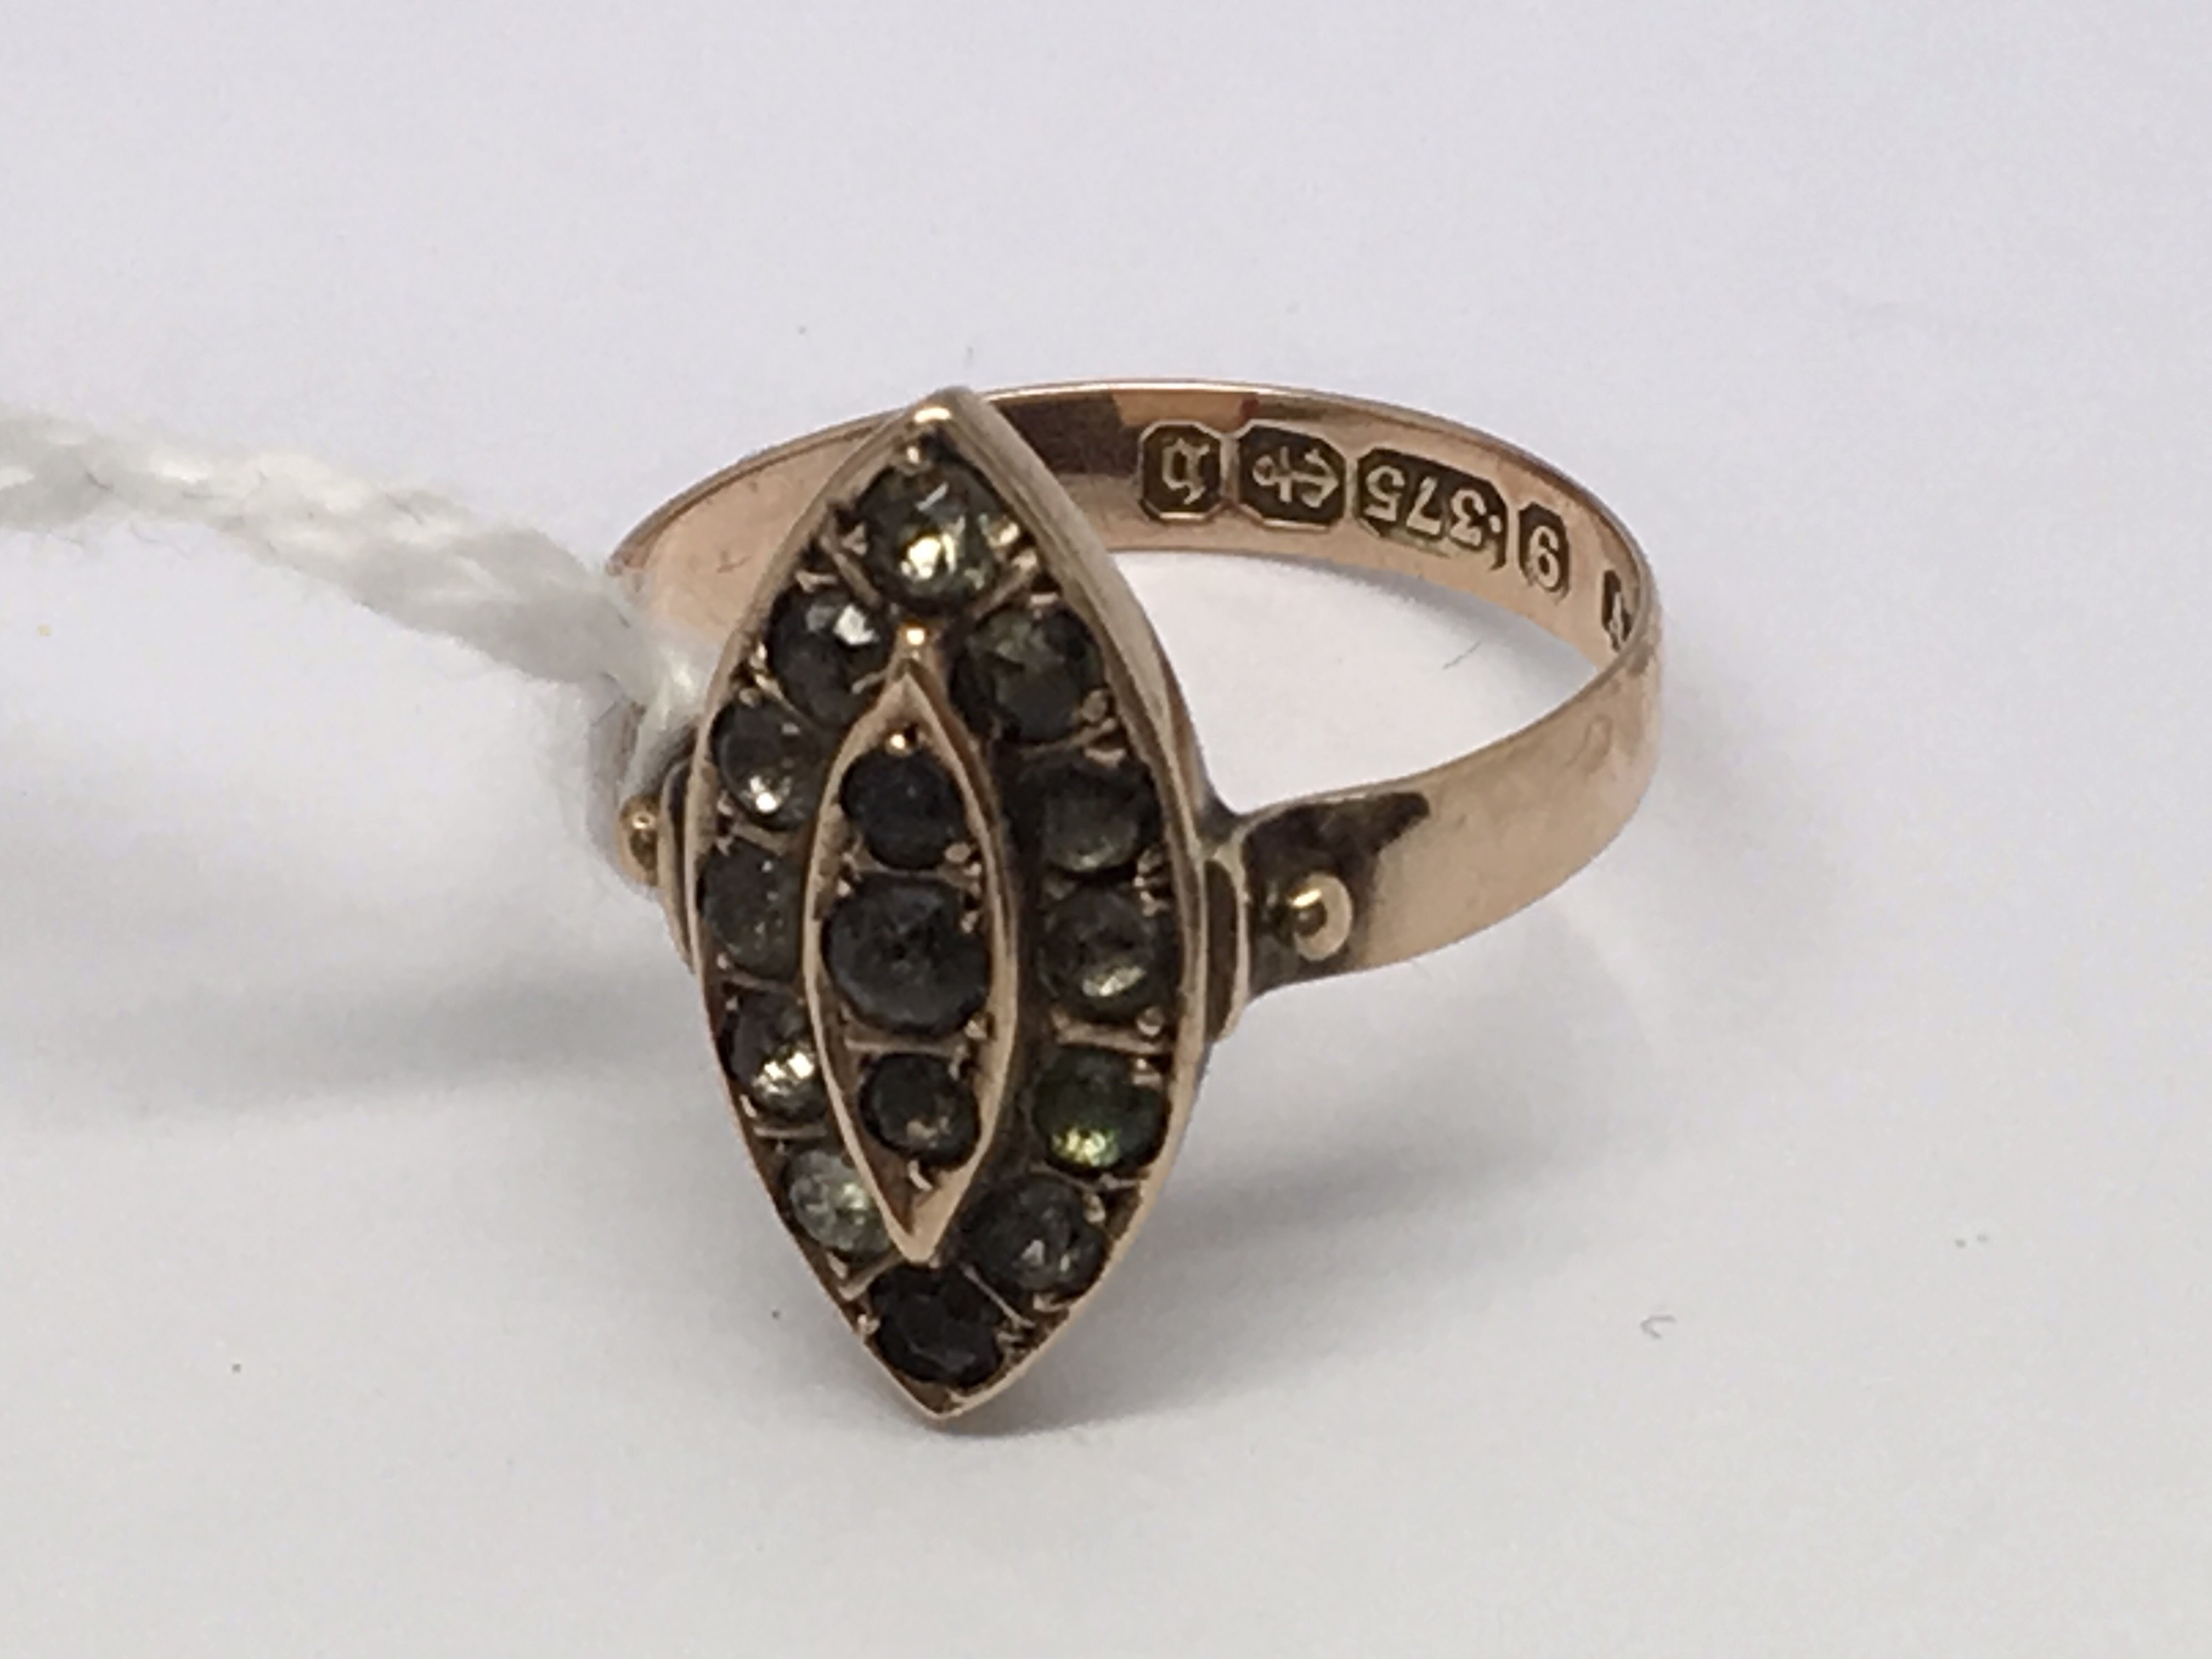 TWO DAY Antiques, Collectables and Jewellery Auction